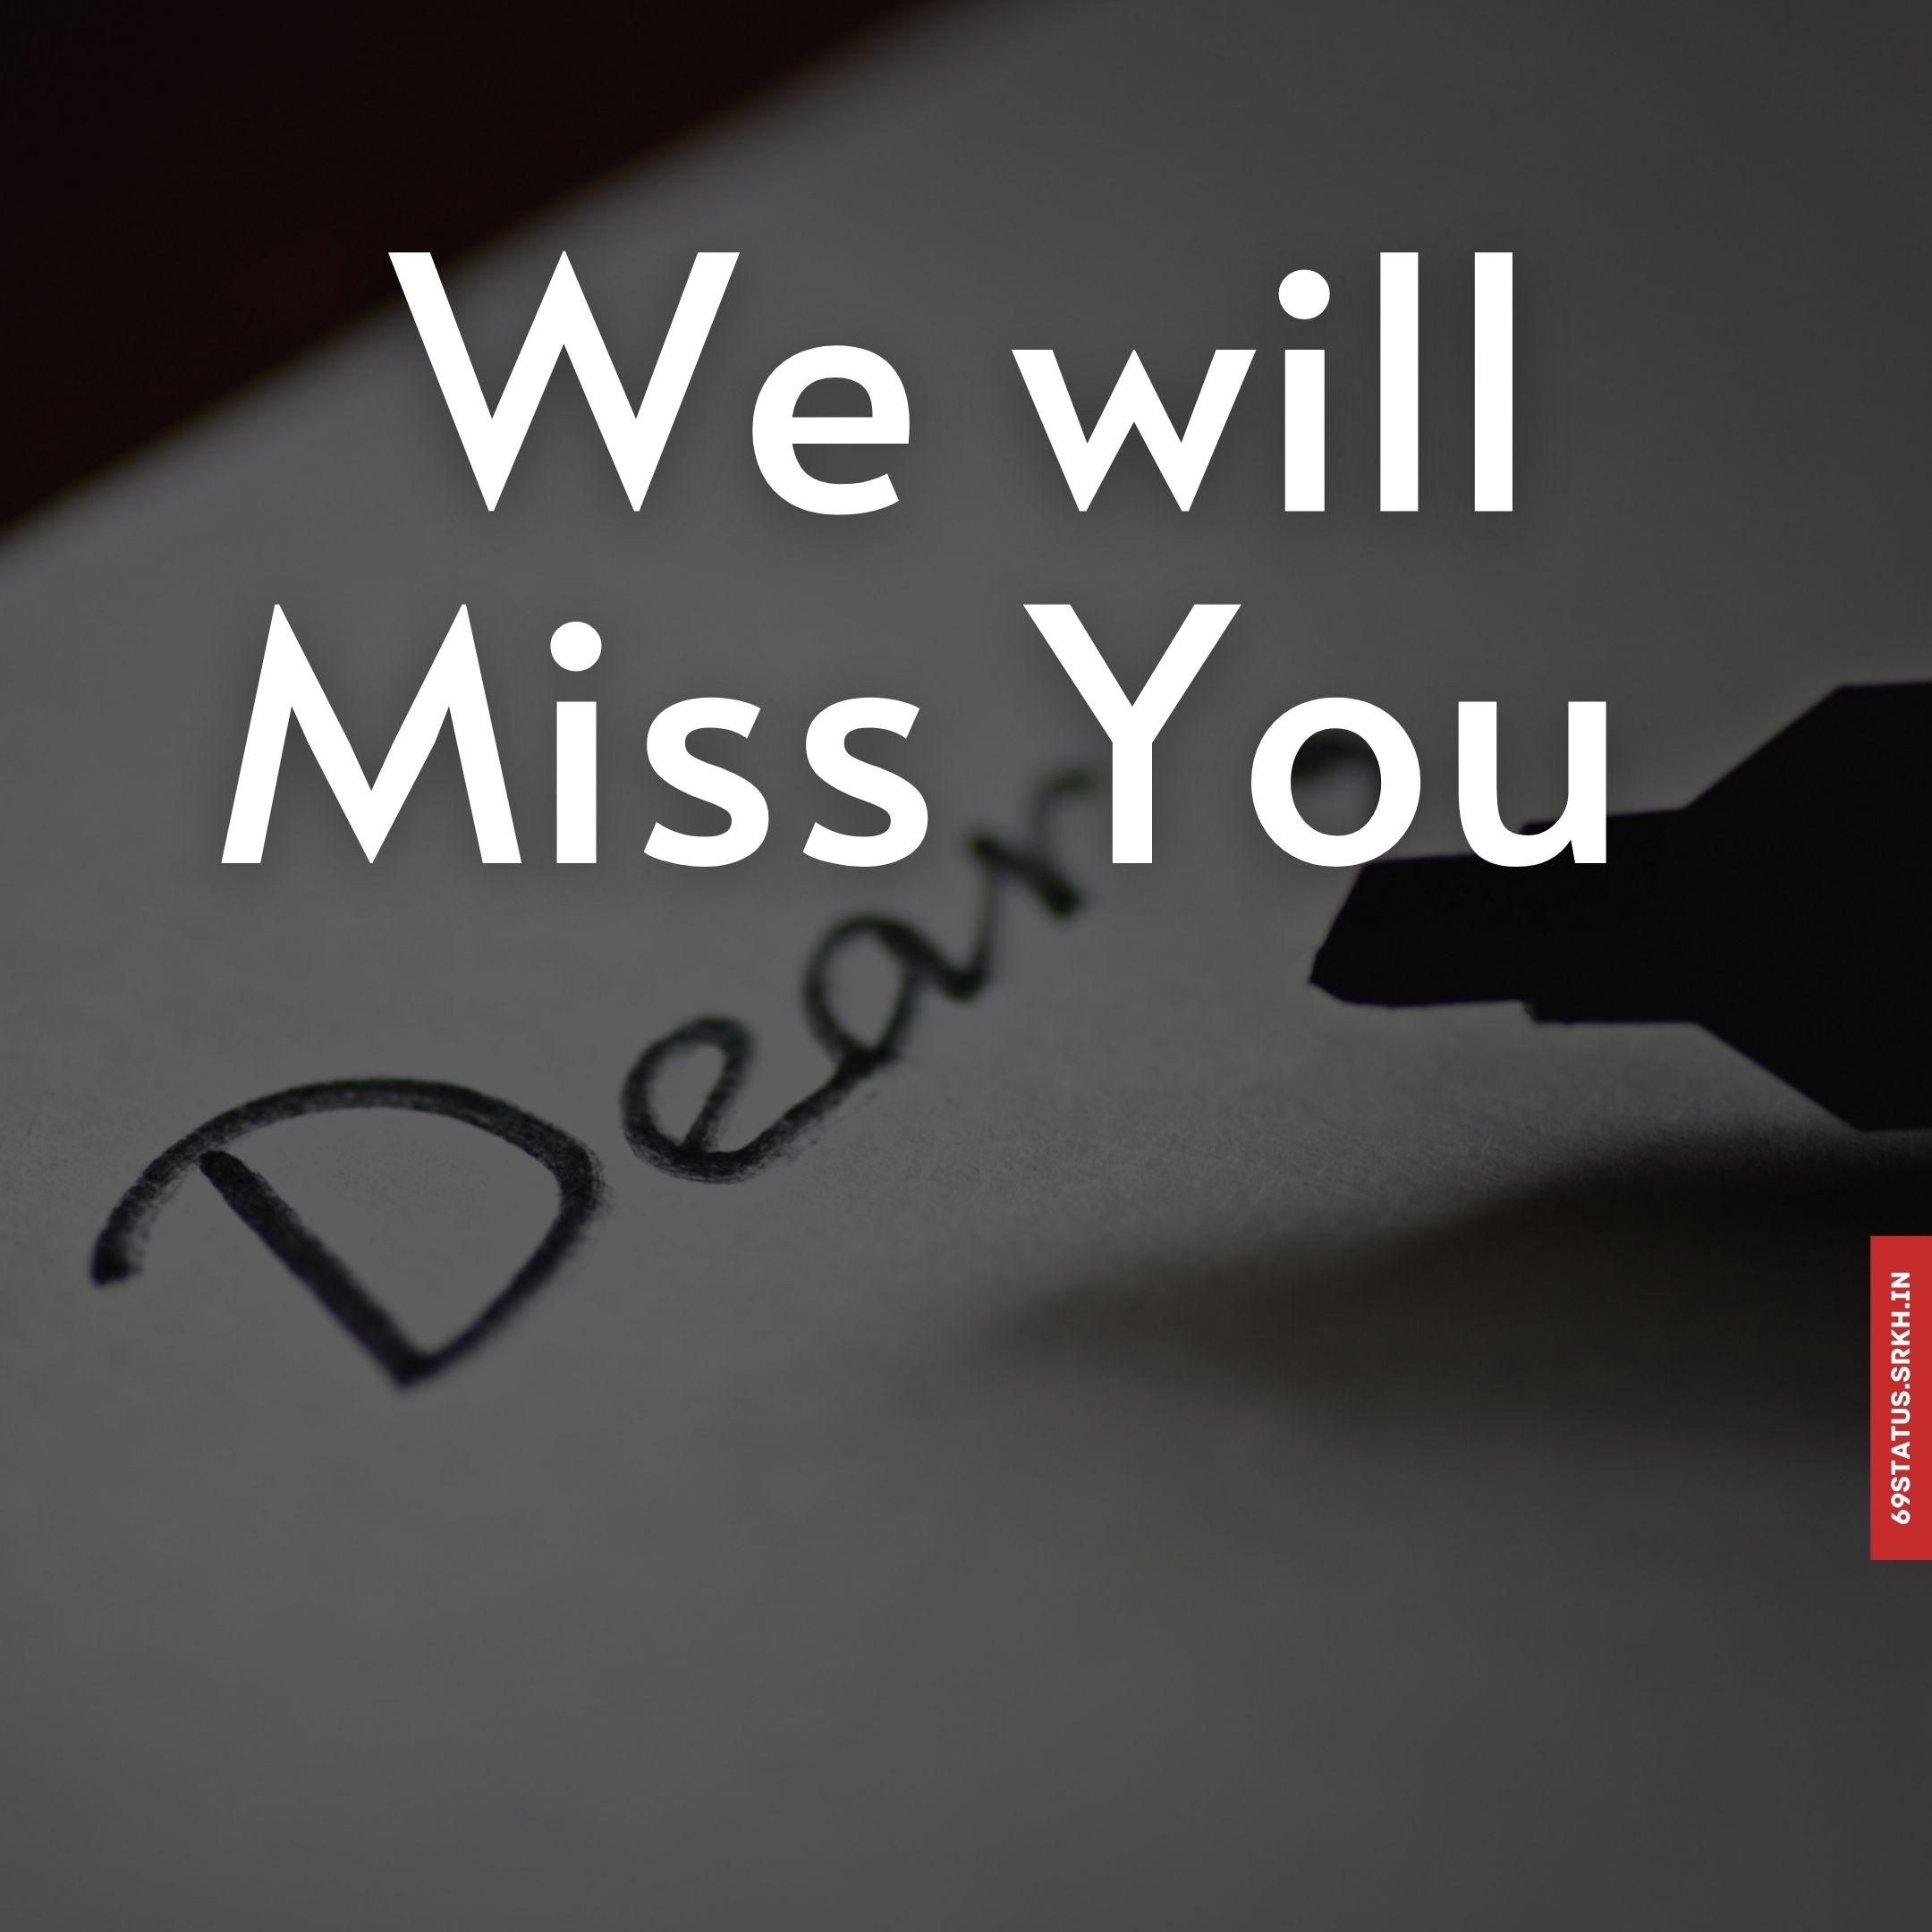 We will miss you images full HD free download.